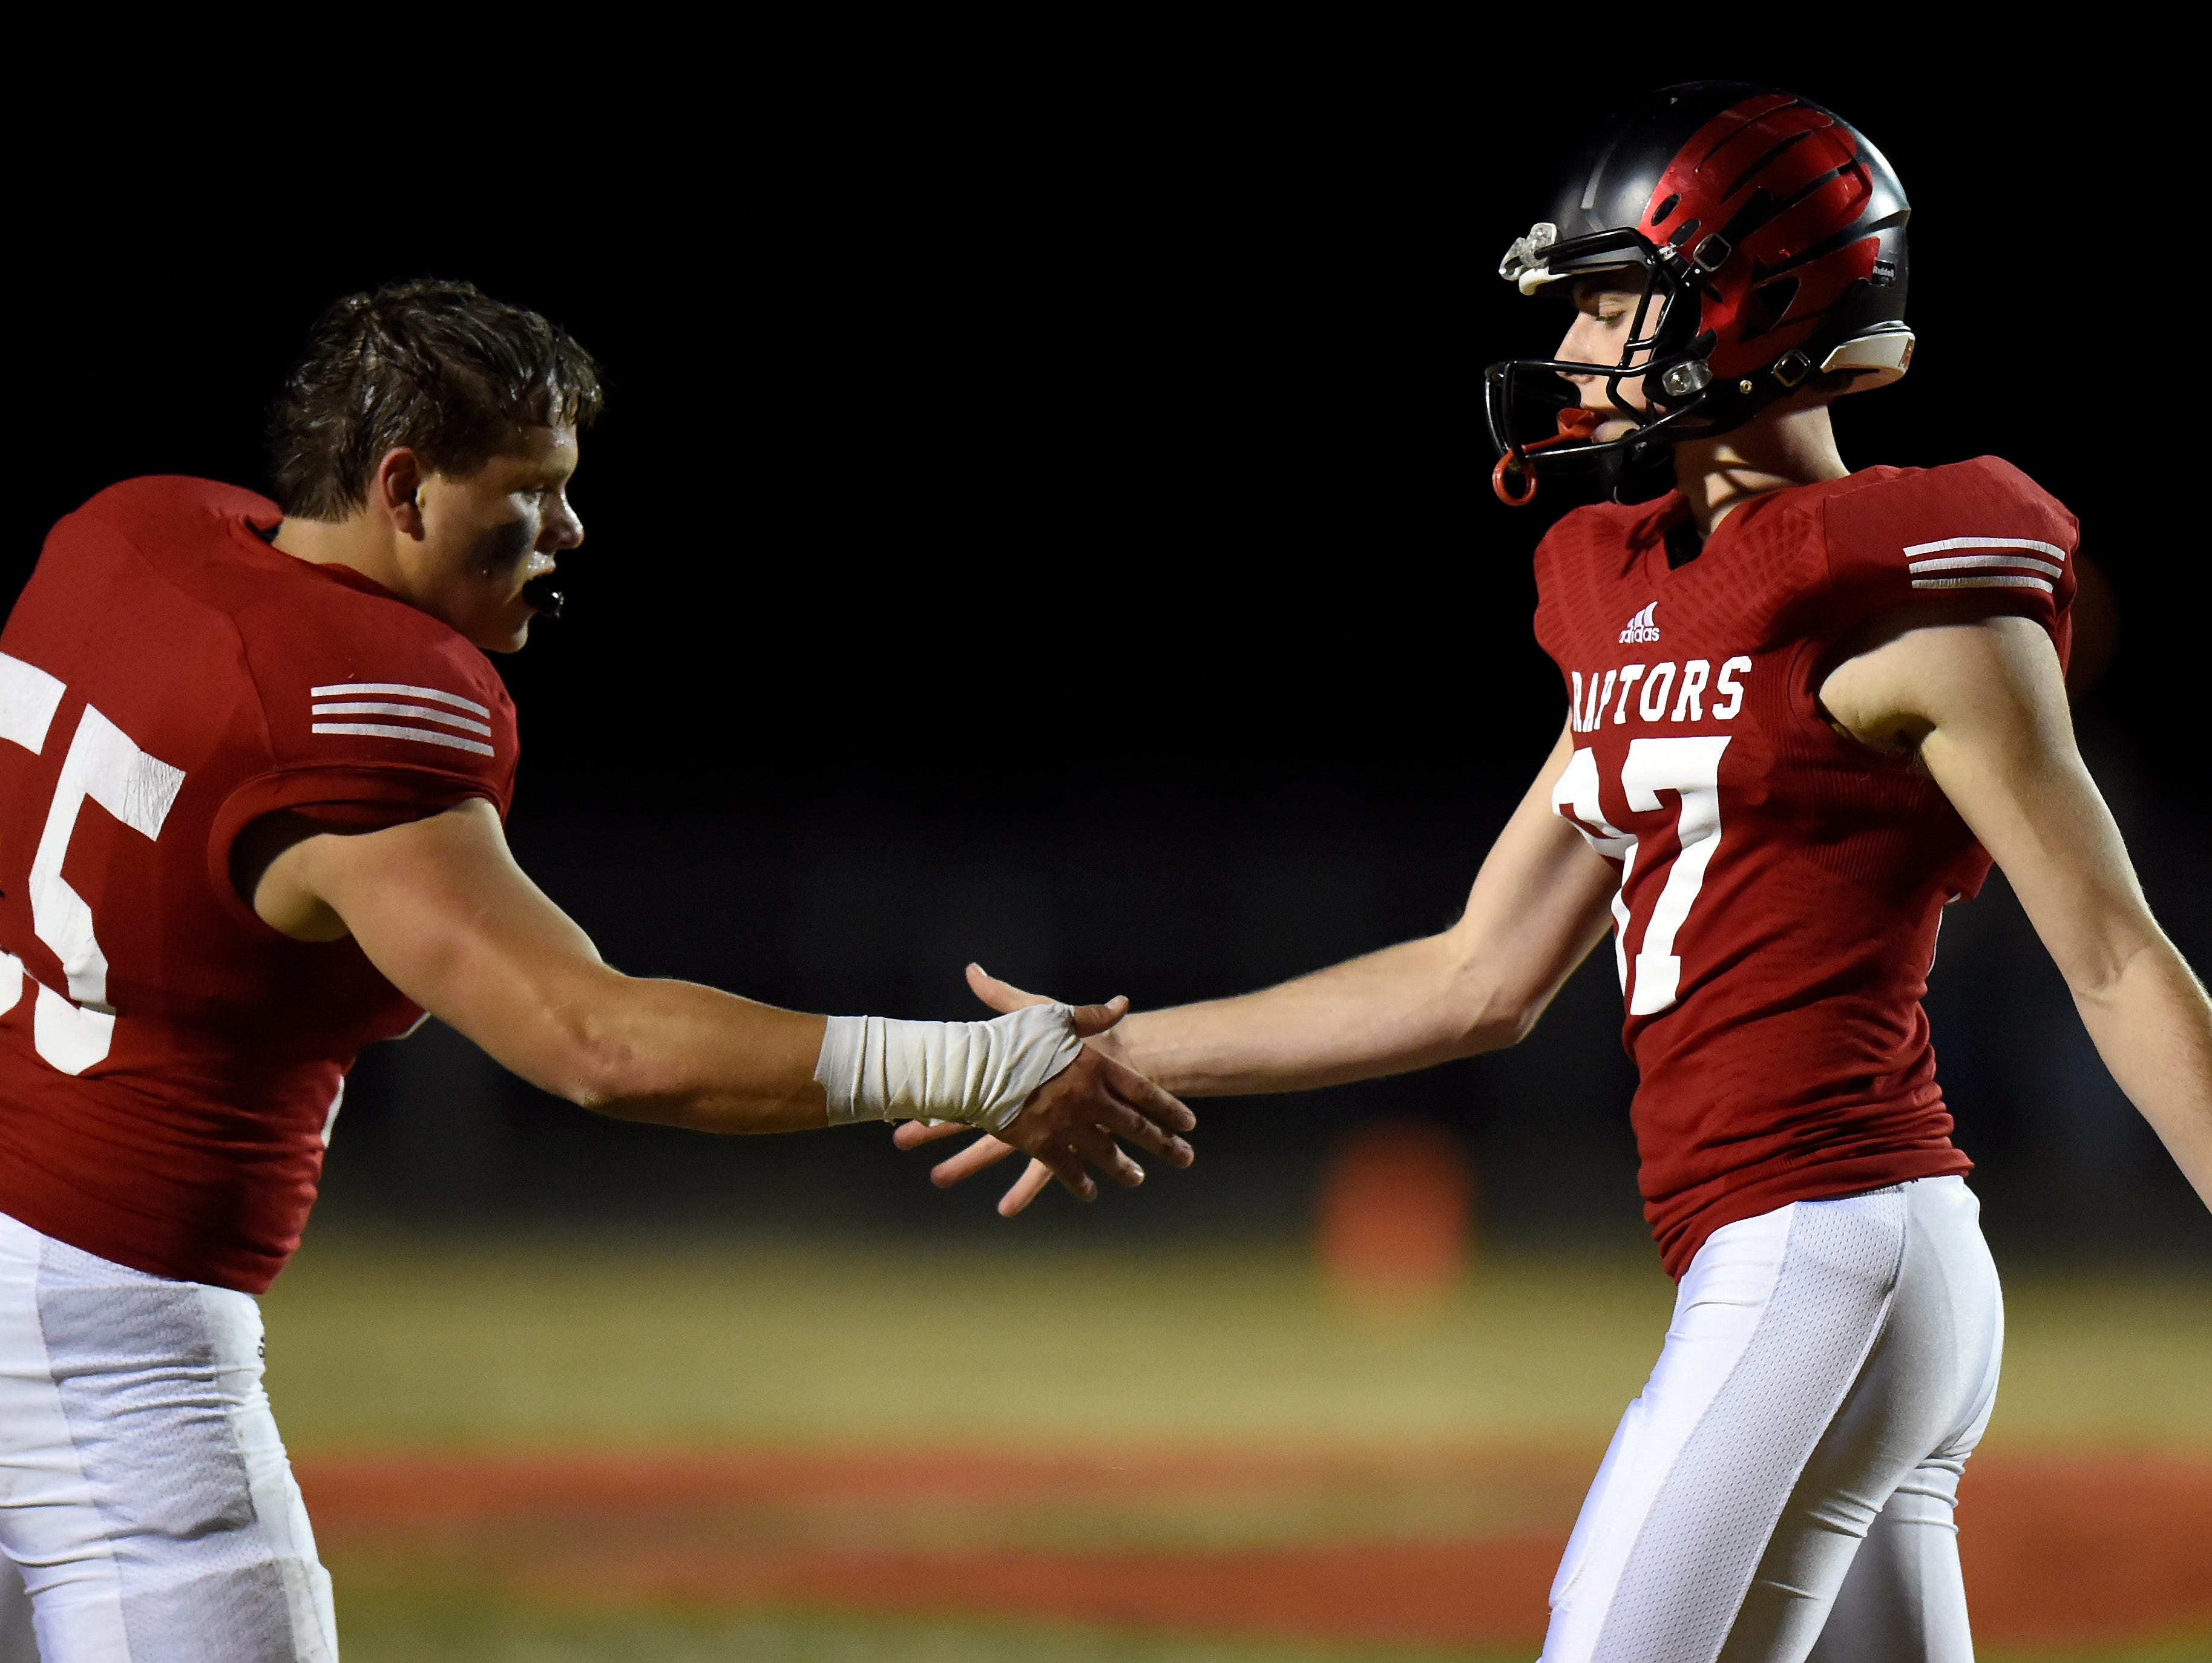 Ravenwood kicker Crews Holt, right, is congratulated by Connor Cassin (55) after Crews kicked a field goal against Whitehaven during the first half of an 6A semifinal playoff football game at Ravenwood High School on Friday, Nov. 27, 2015 in Brentwood, Tenn.